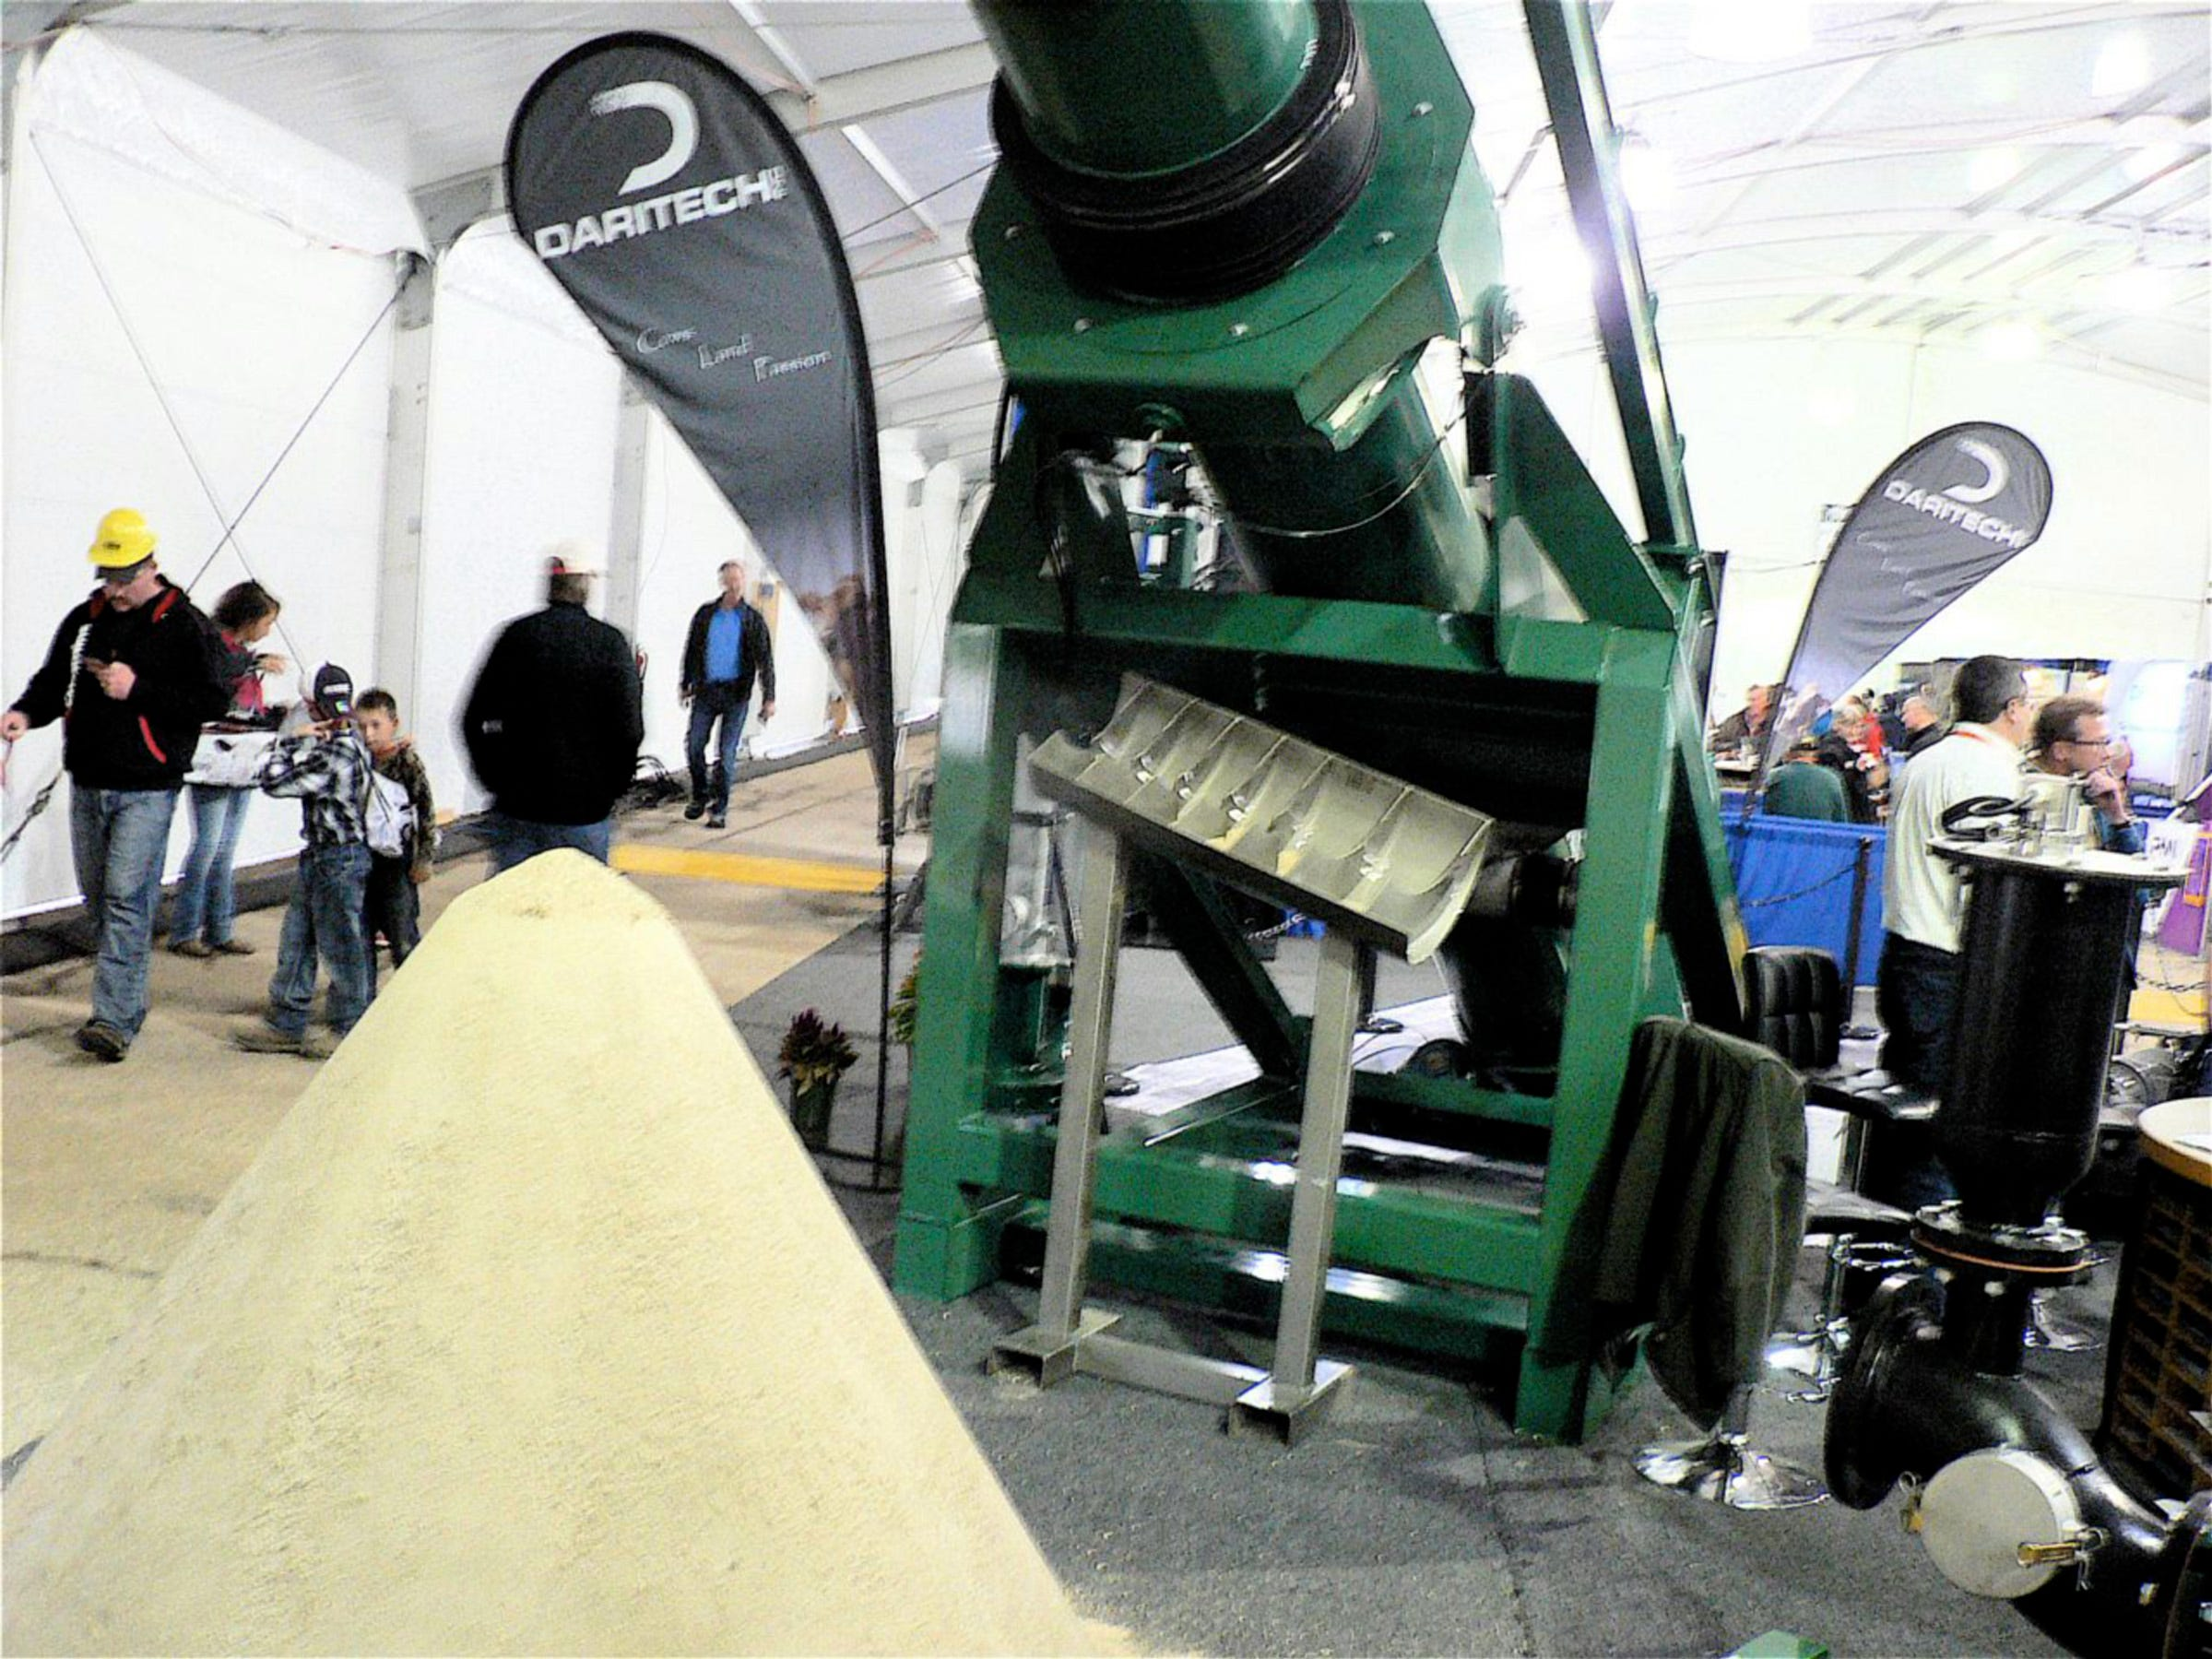 The DariTec One Shot sand recovery system drew lots of attention from farms using sand as cow bedding.